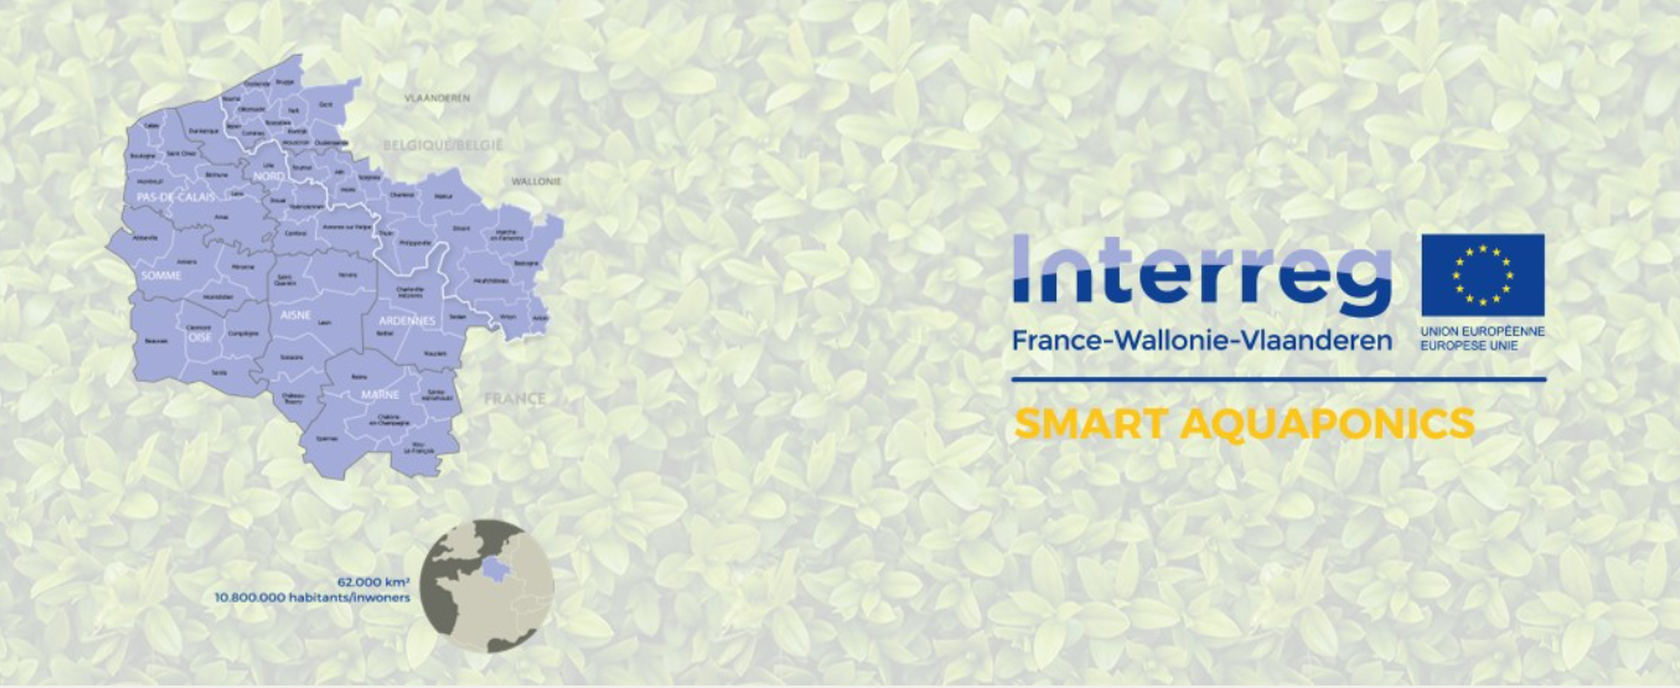 Smart Aquaponics Interreg logo